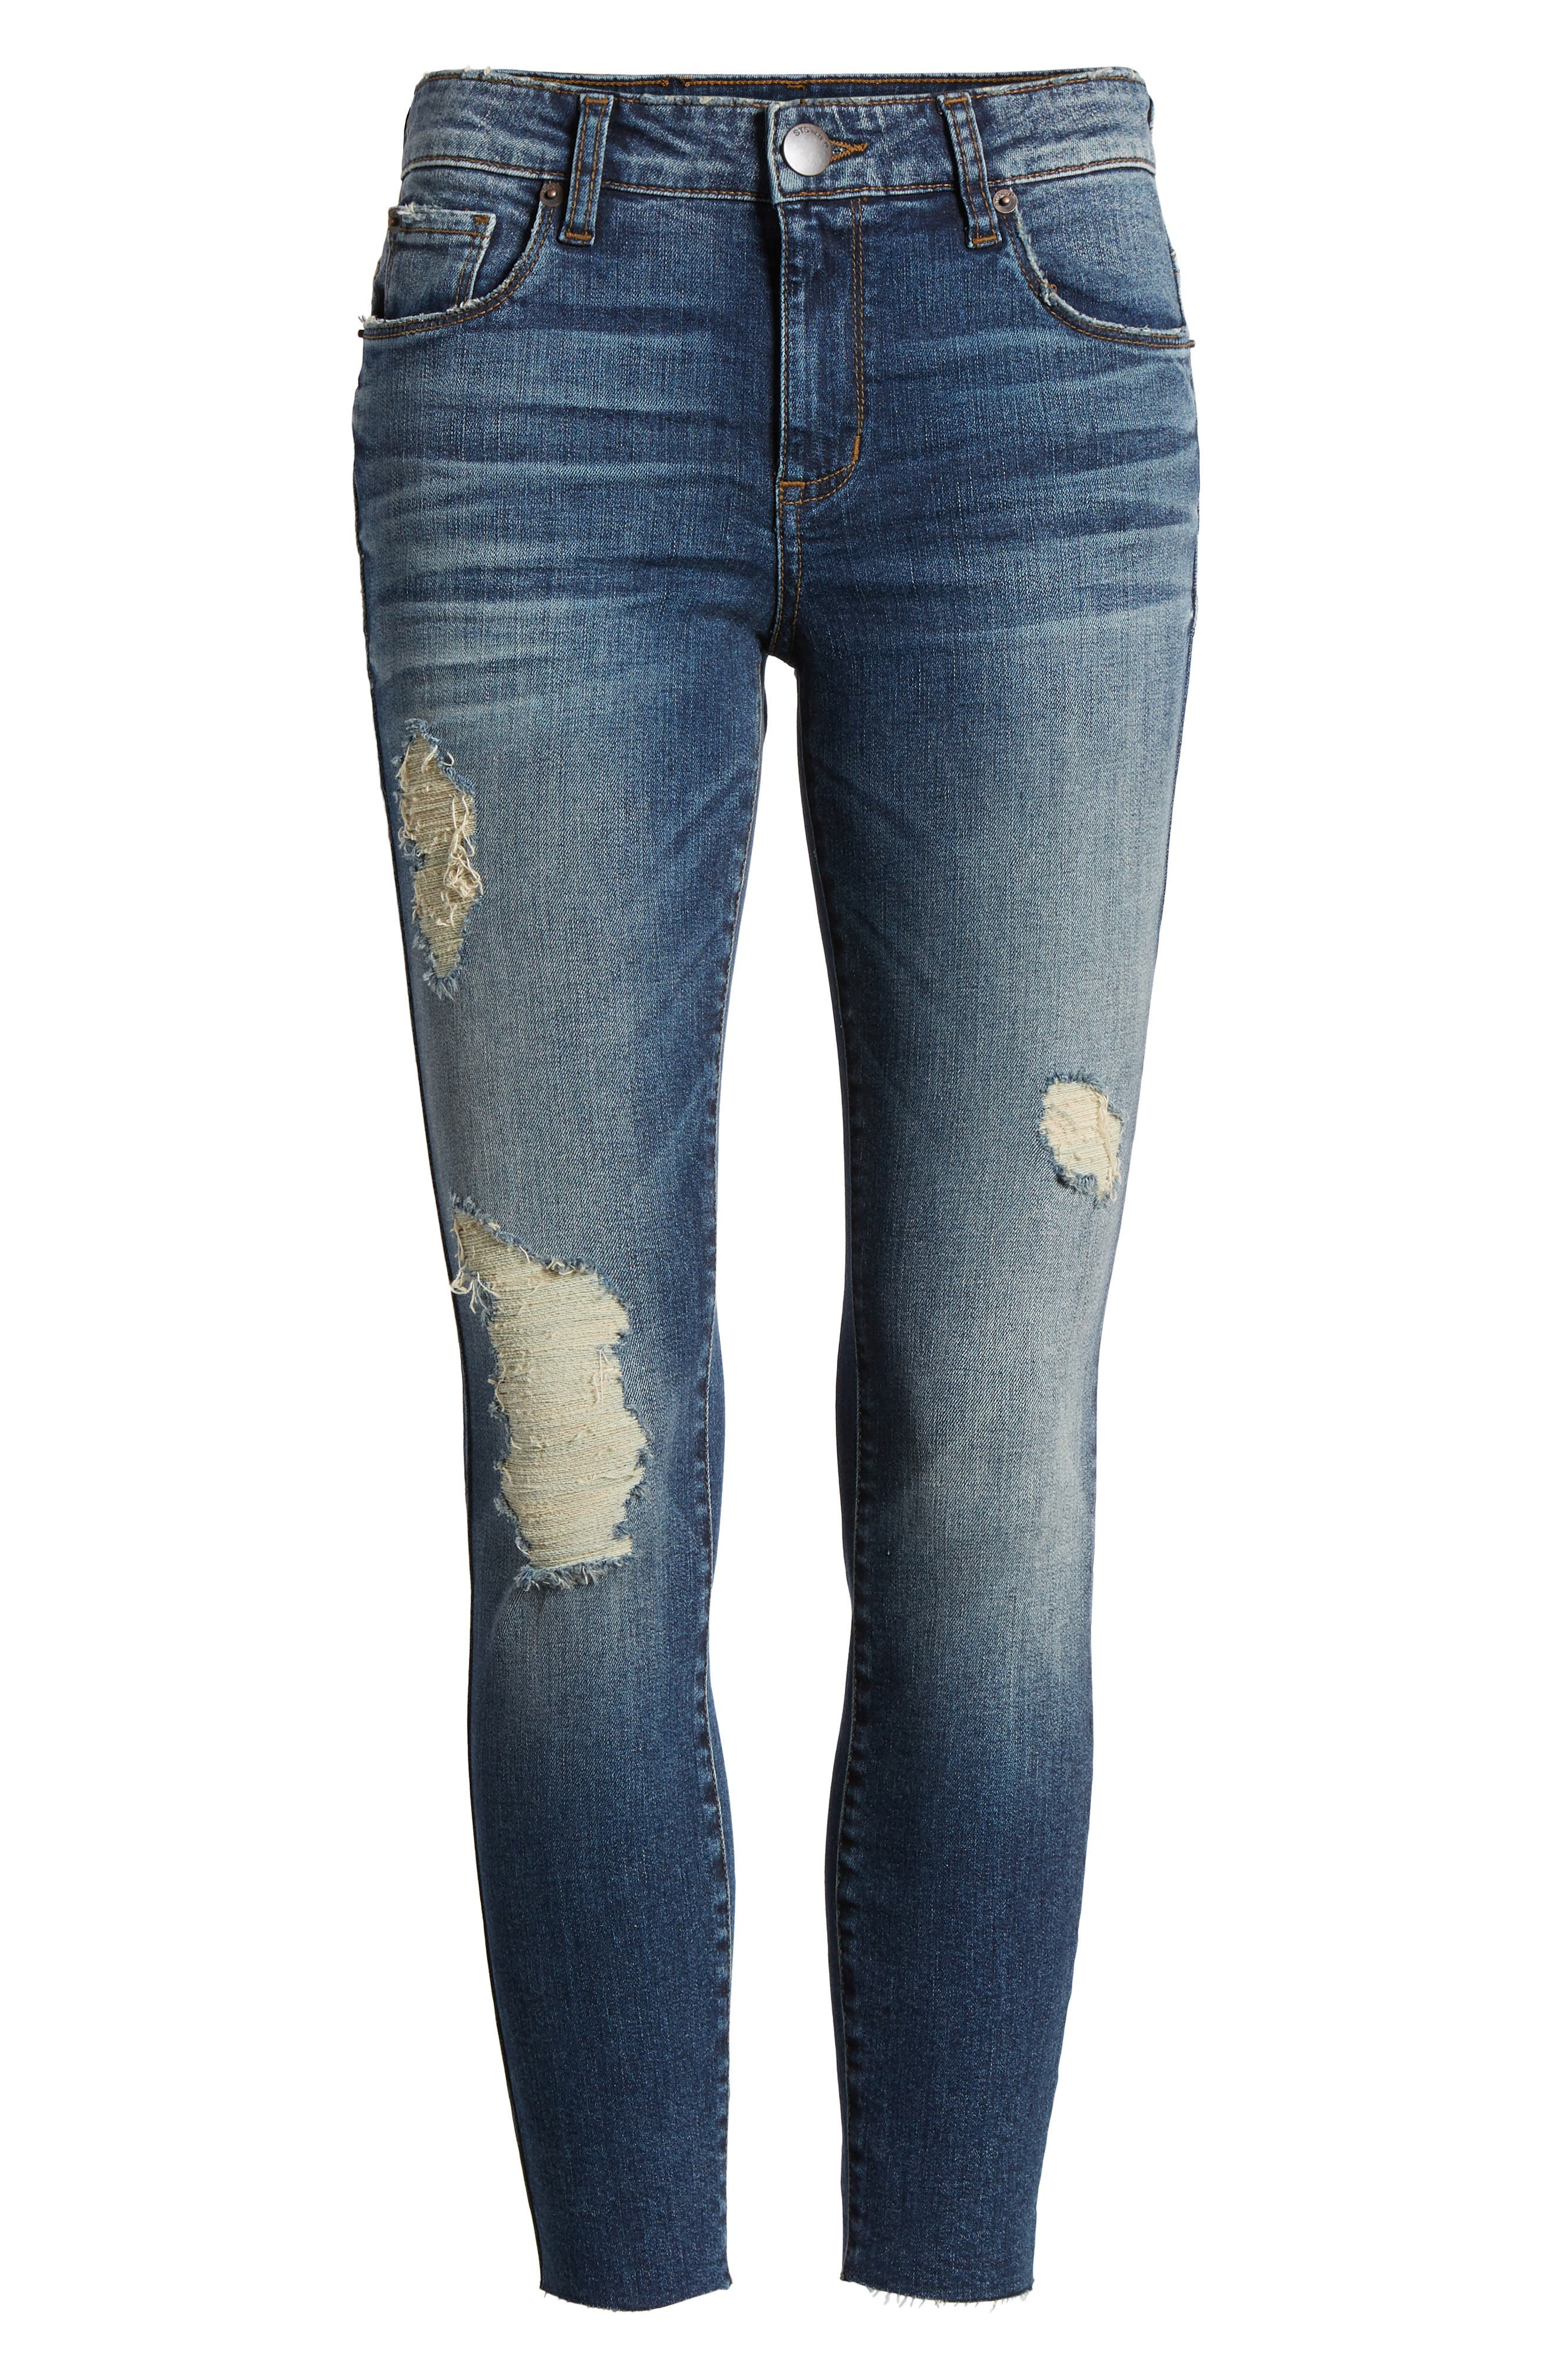 STS Blue Ripped Cutoff Crop Skinny Jeans,                             Alternate thumbnail 7, color,                             Flora W/ Dk Base